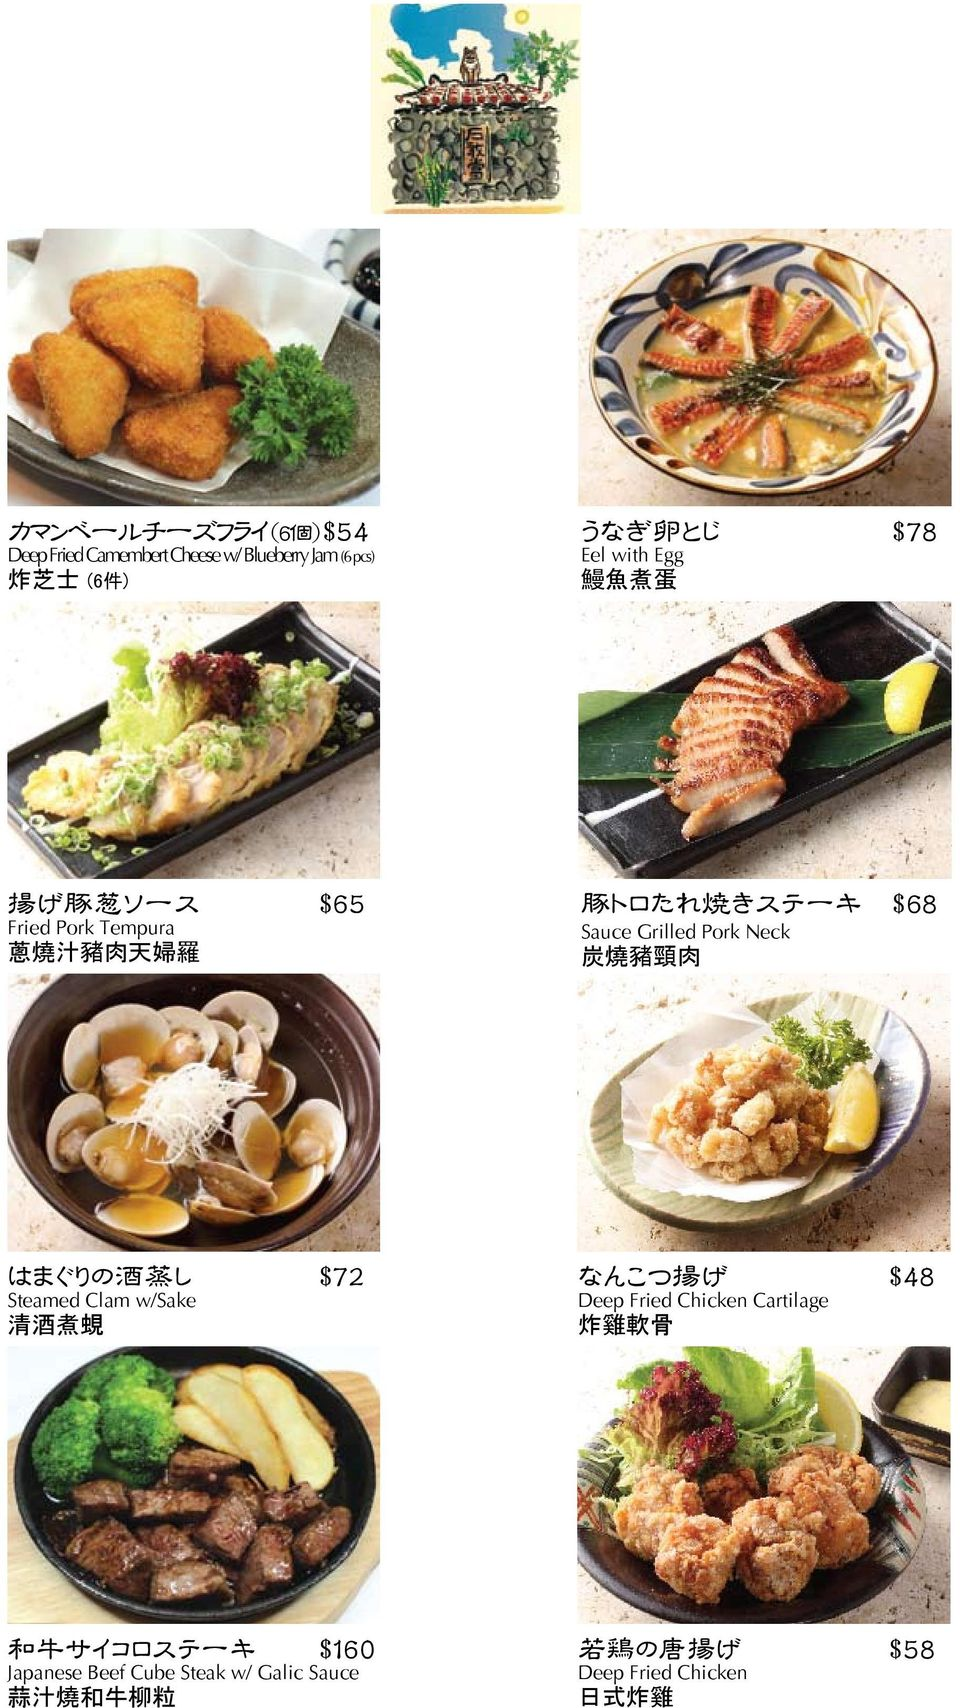 Neck 炭 燒 豬 頸 肉 はまぐりの 酒 蒸 し $72 Steamed Clam w/sake 清 酒 煮 蜆 なんこつ 揚 げ $48 Deep Fried Chicken Cartilage 炸 雞 軟 骨